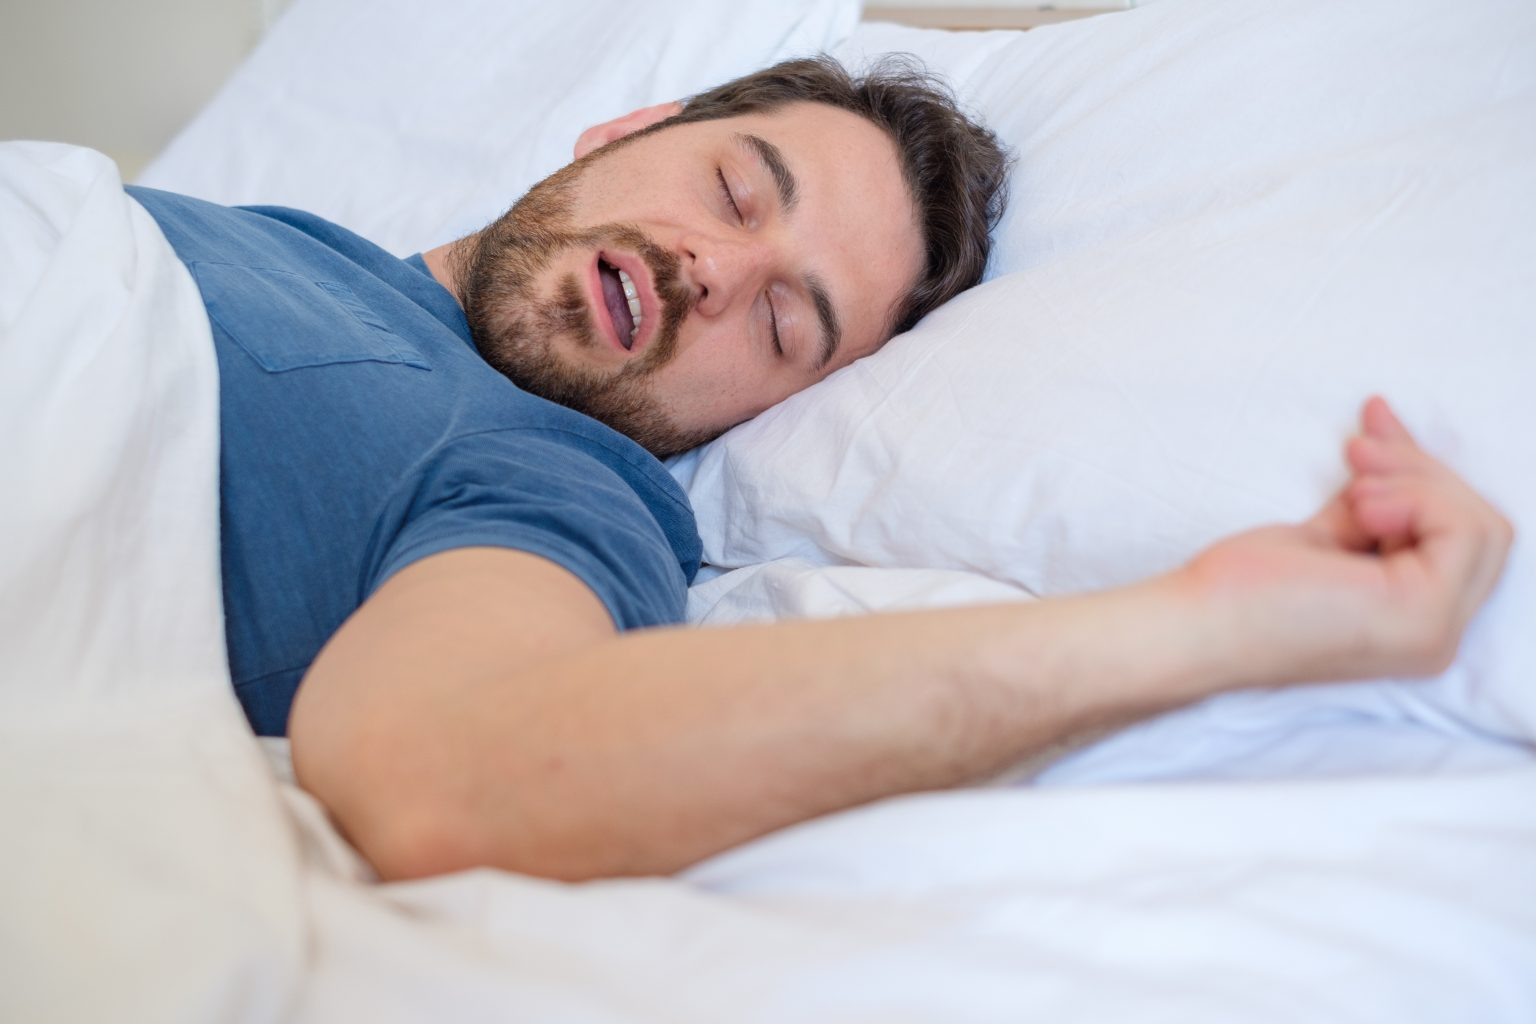 snore problem concept.man in bed snoring and sleeping